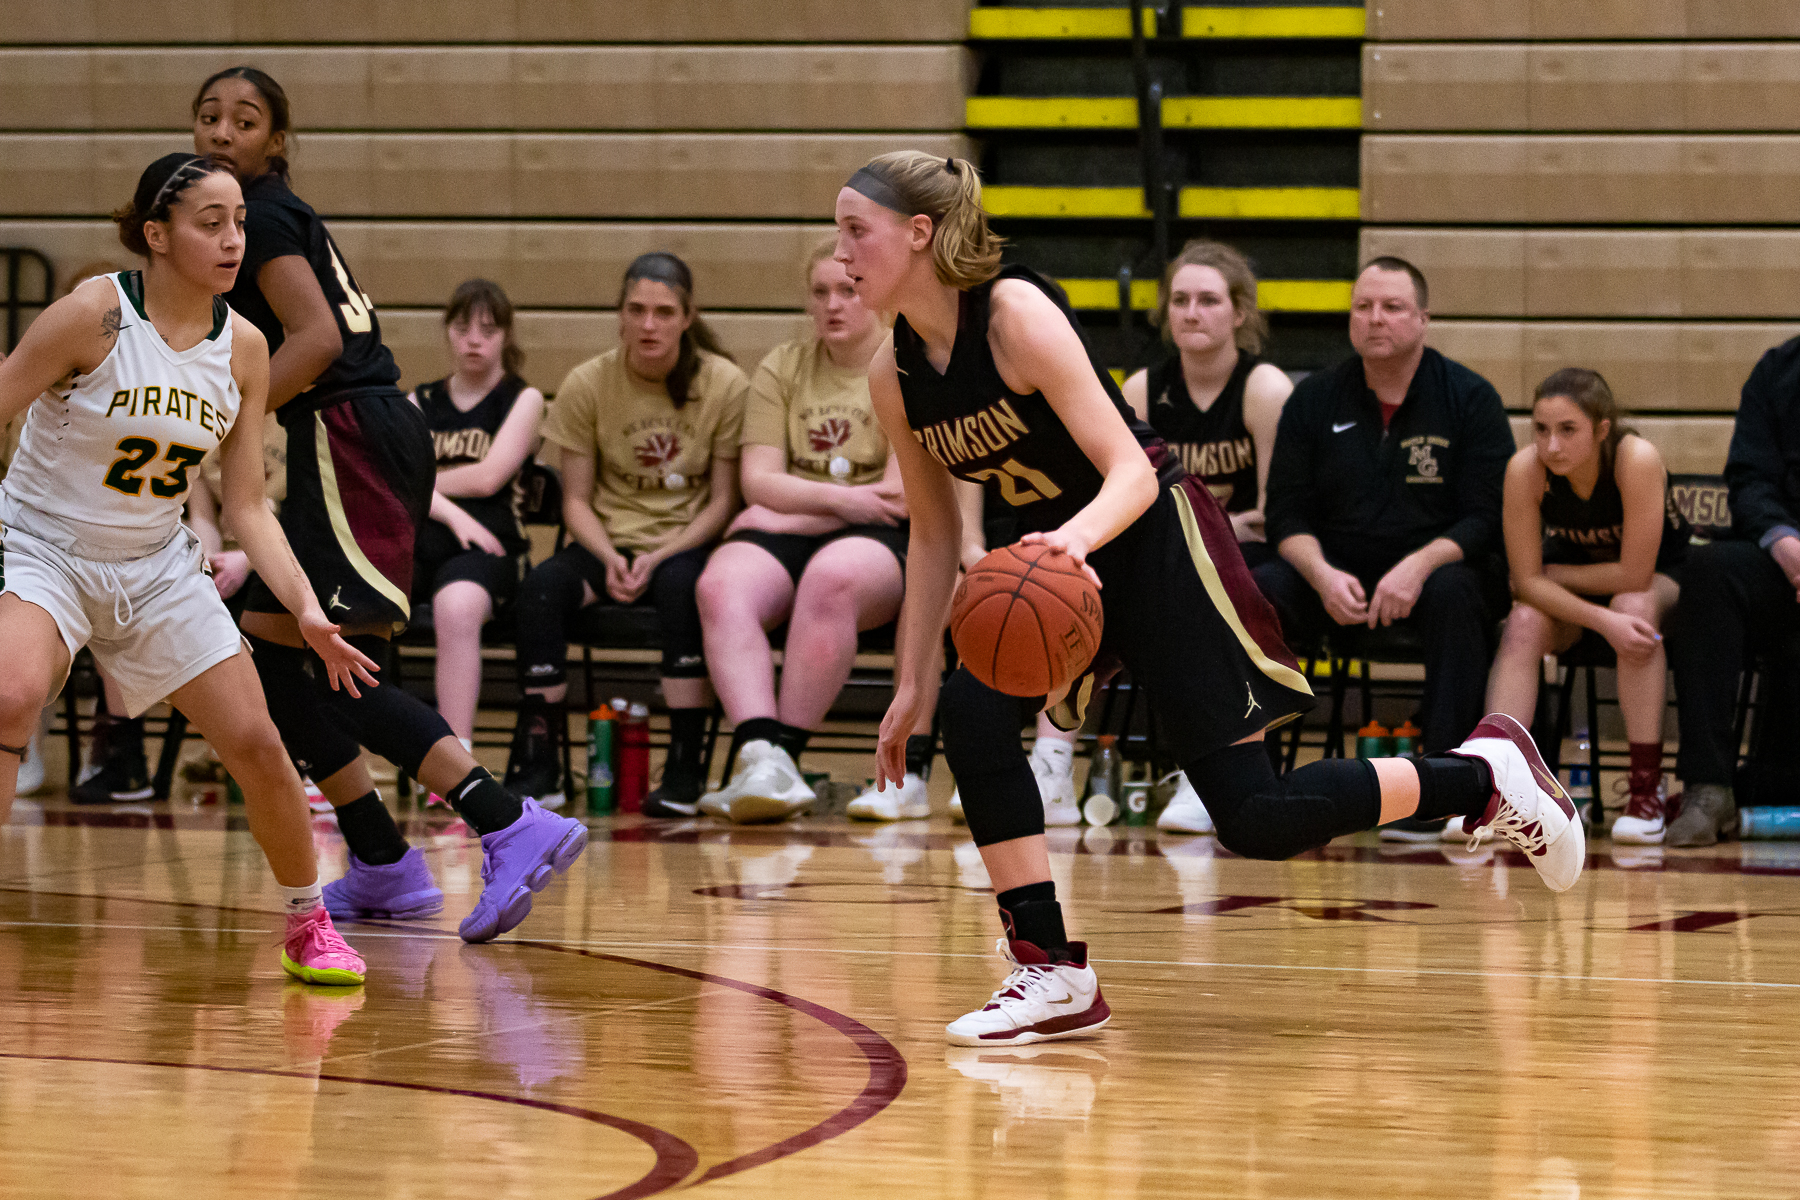 Maple Grove senior Abby Schulte (21) drives to the basket against Park Center's Kayla Cox (23). Schulte's 22 points led the Crimson in their 69-65 loss to the Pirates at Maple Grove High School. Photo by Gary Mukai, SportsEngine